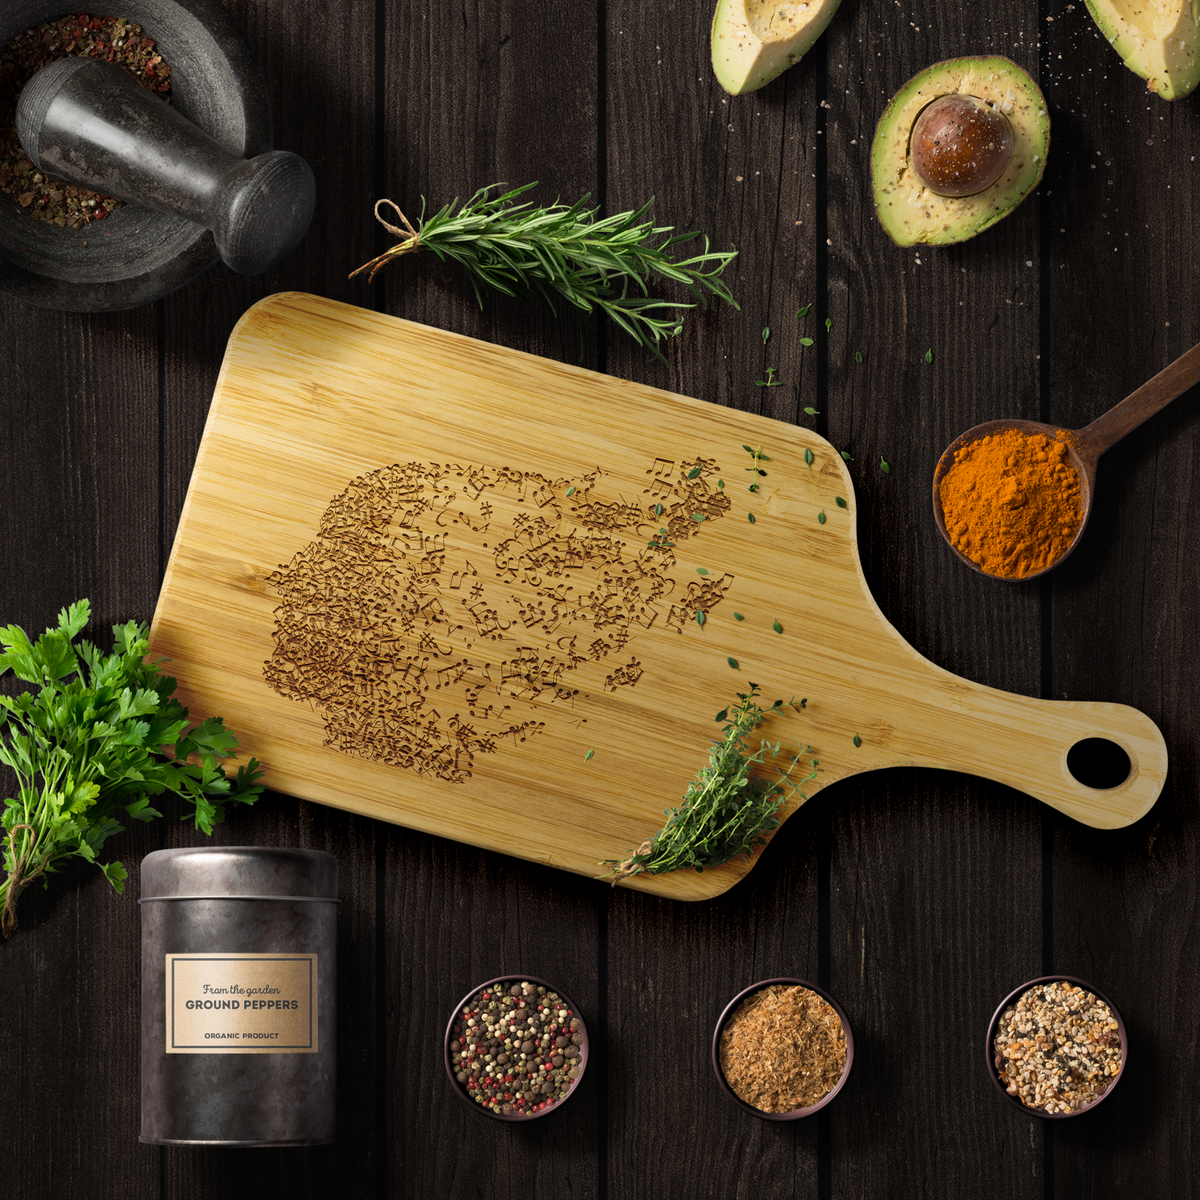 Musical Head - Wood Cutting Board With Handle